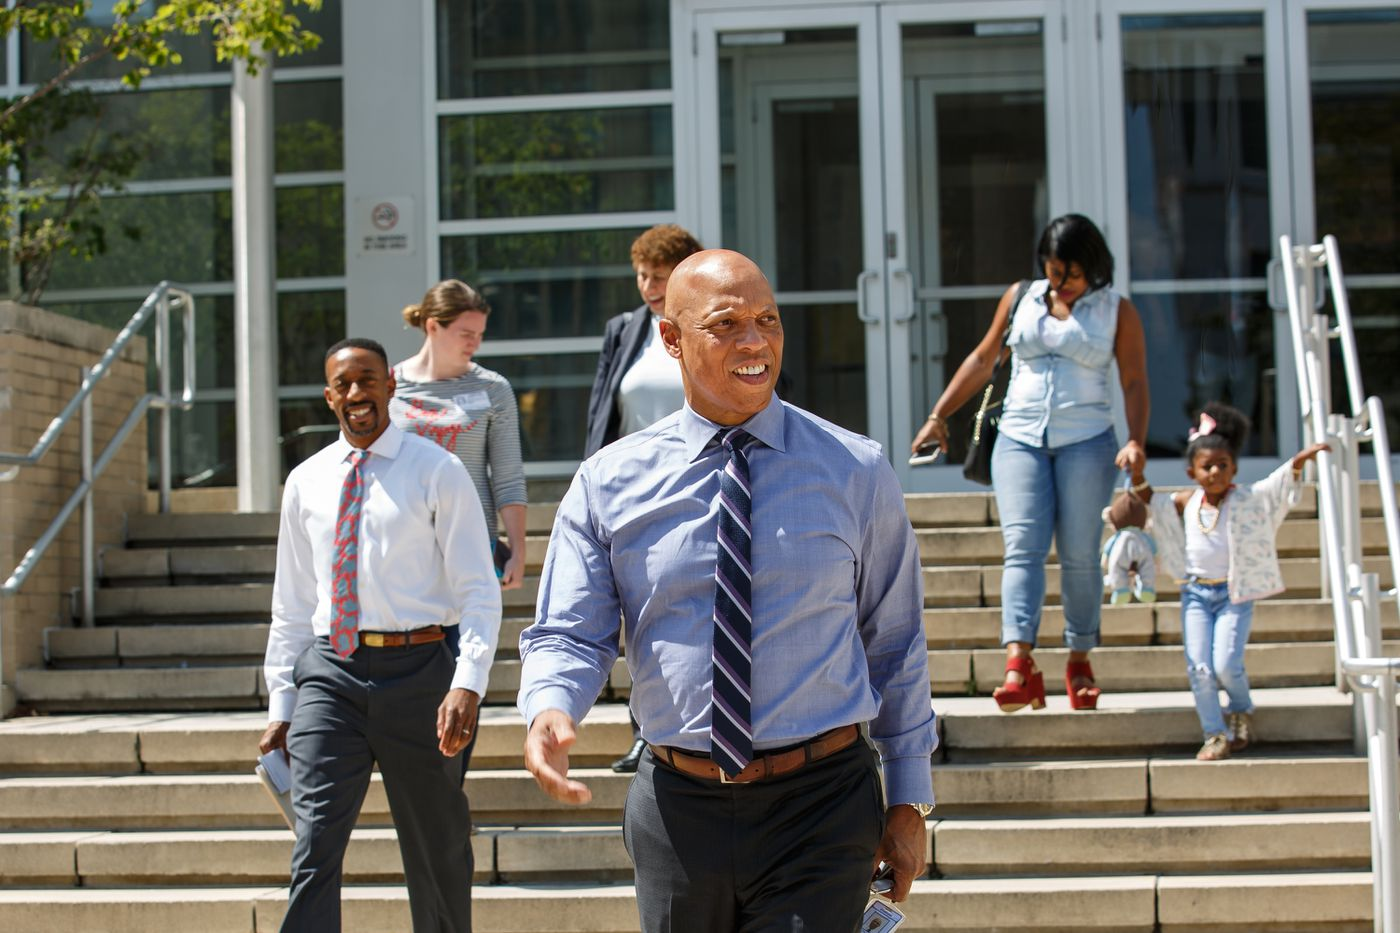 On tap for Philly schools this year: Local control, toxin cleanup and consistency